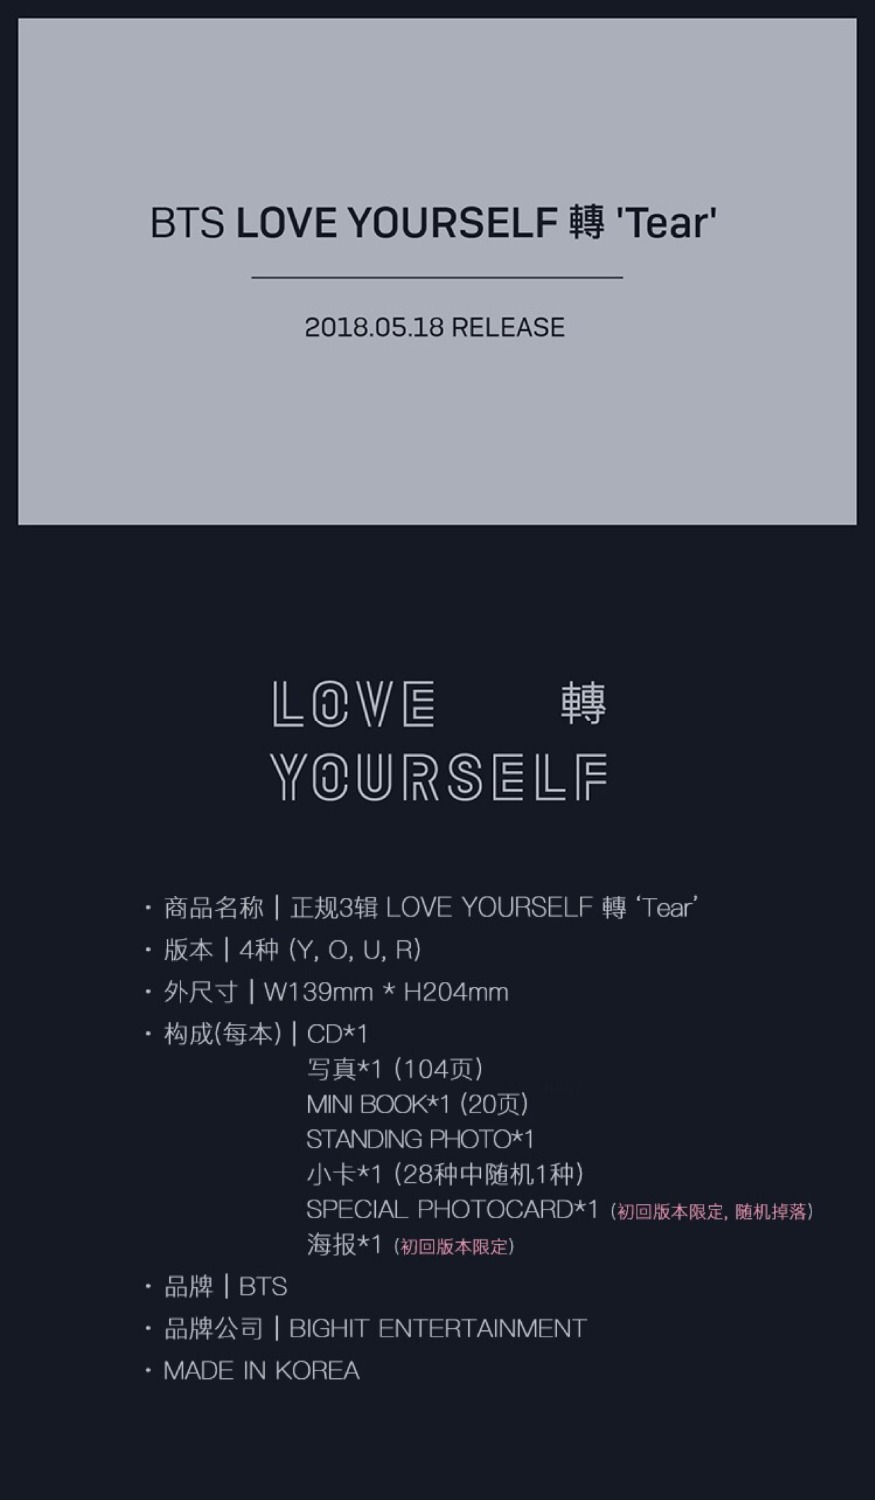 NEST BTS - 2018 BTS LOVE CD LOVE YOURSELF Turn